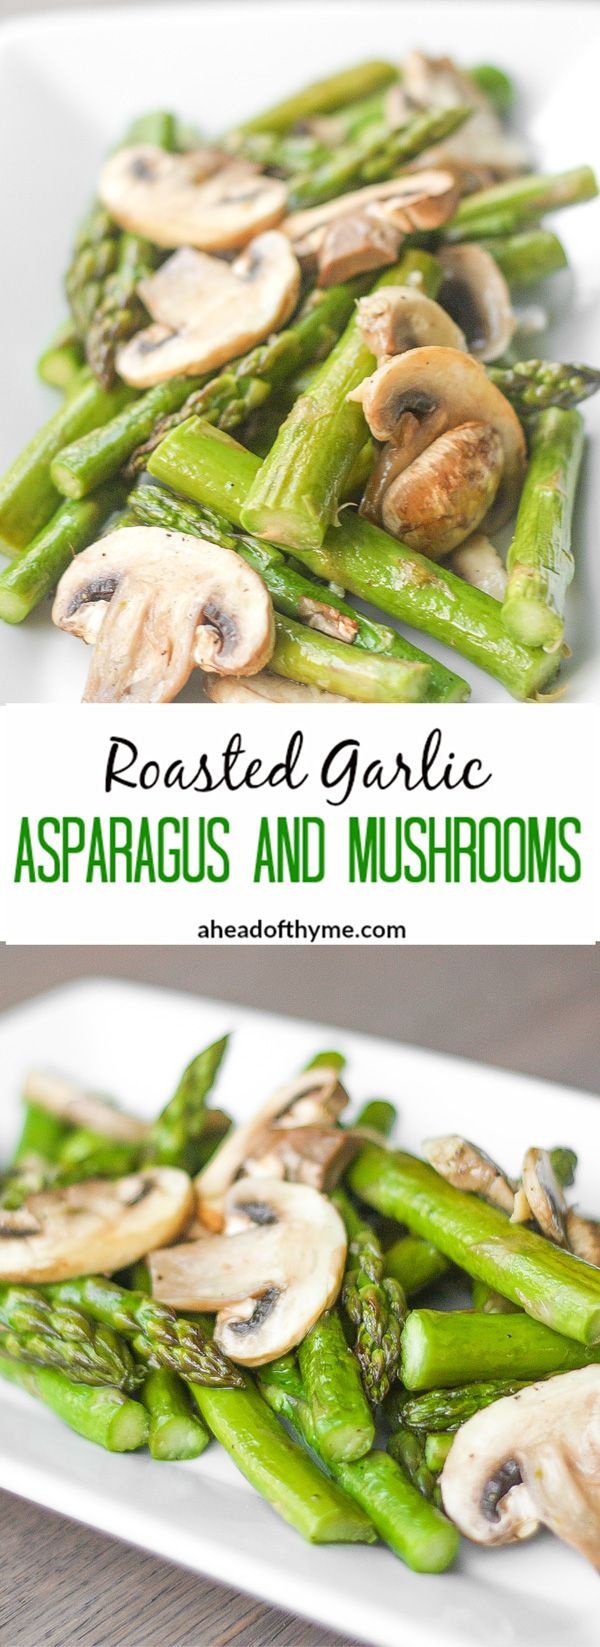 Roasted Garlic Asparagus and Mushrooms: The perfect vegan side dish to any meal. Serve with chicken breast or salmon for a complete meal | aheadofthyme.com